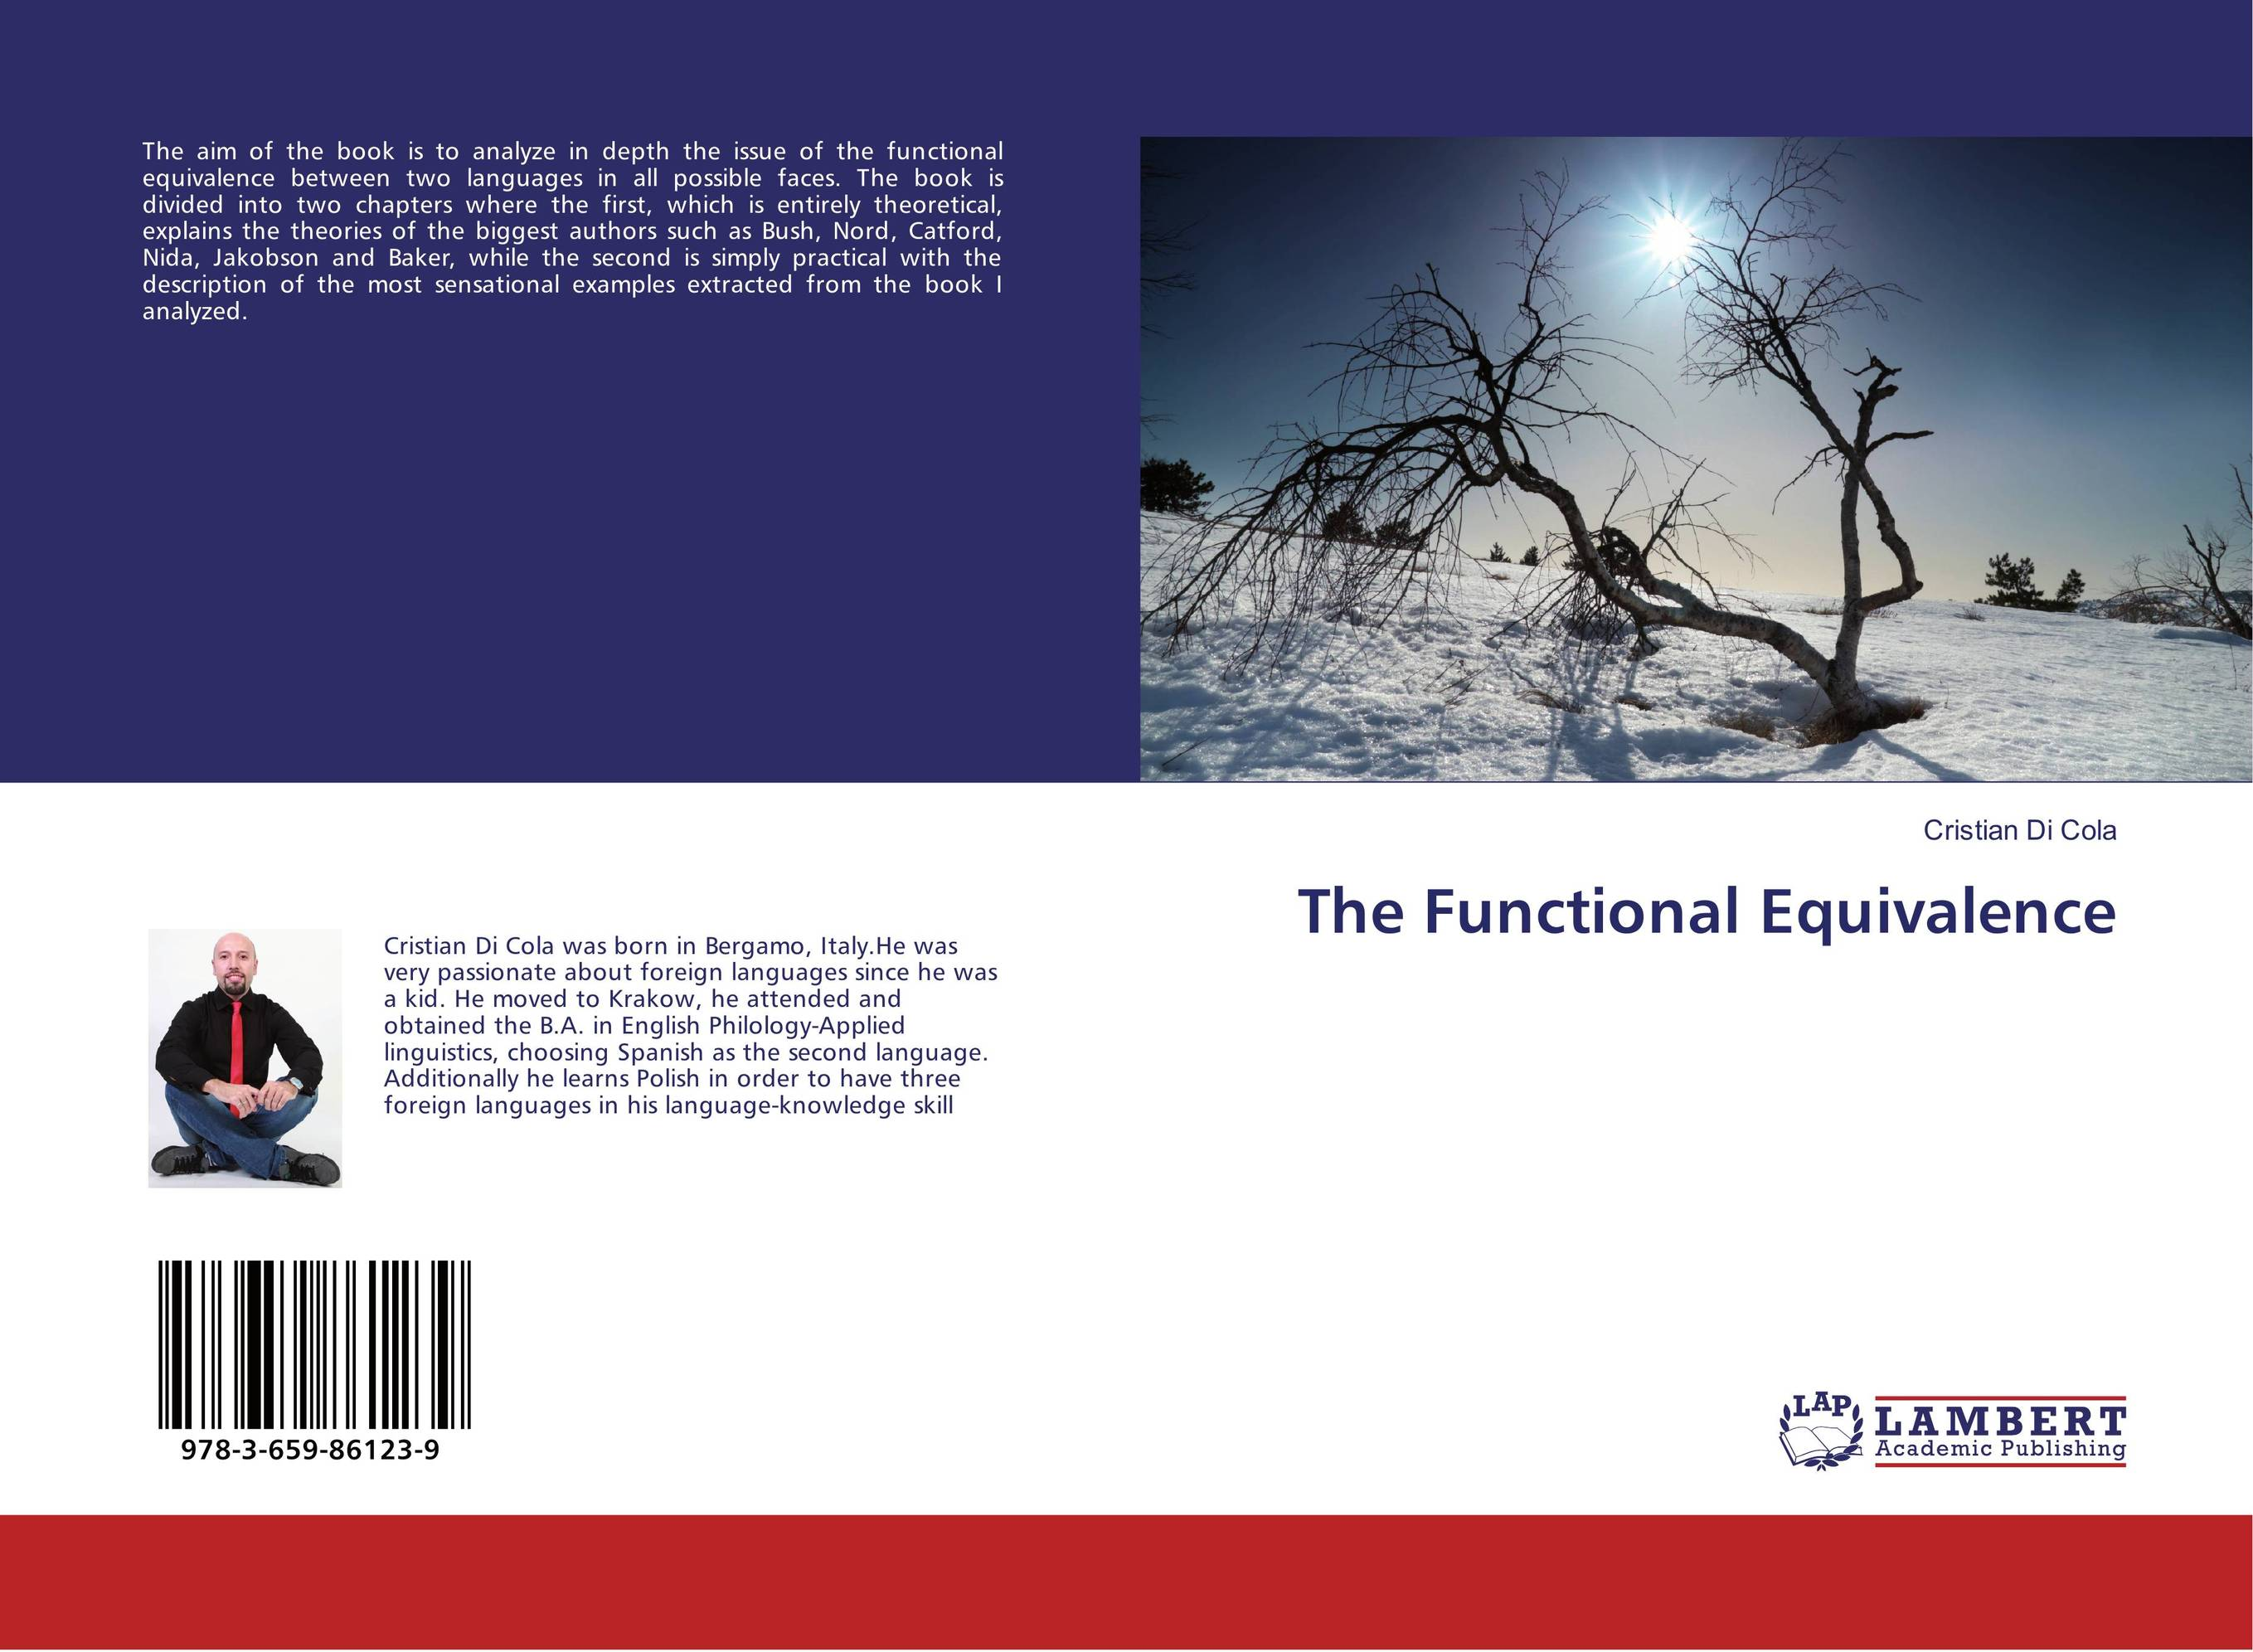 The Functional Equivalence